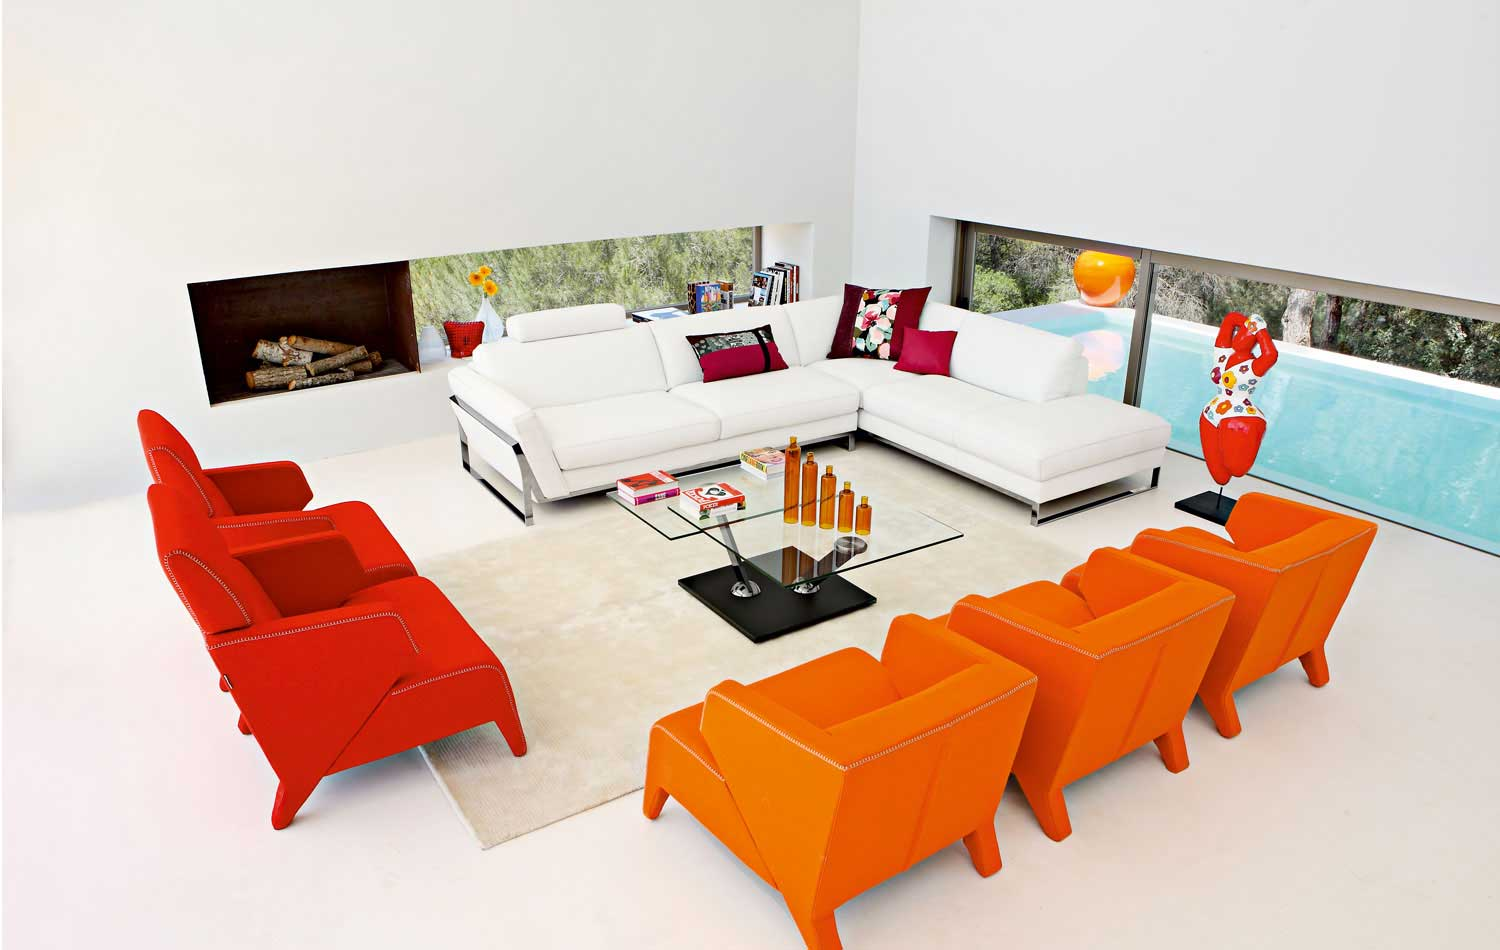 Add color to your living room d cor adorable home - Sillones roche bobois ...